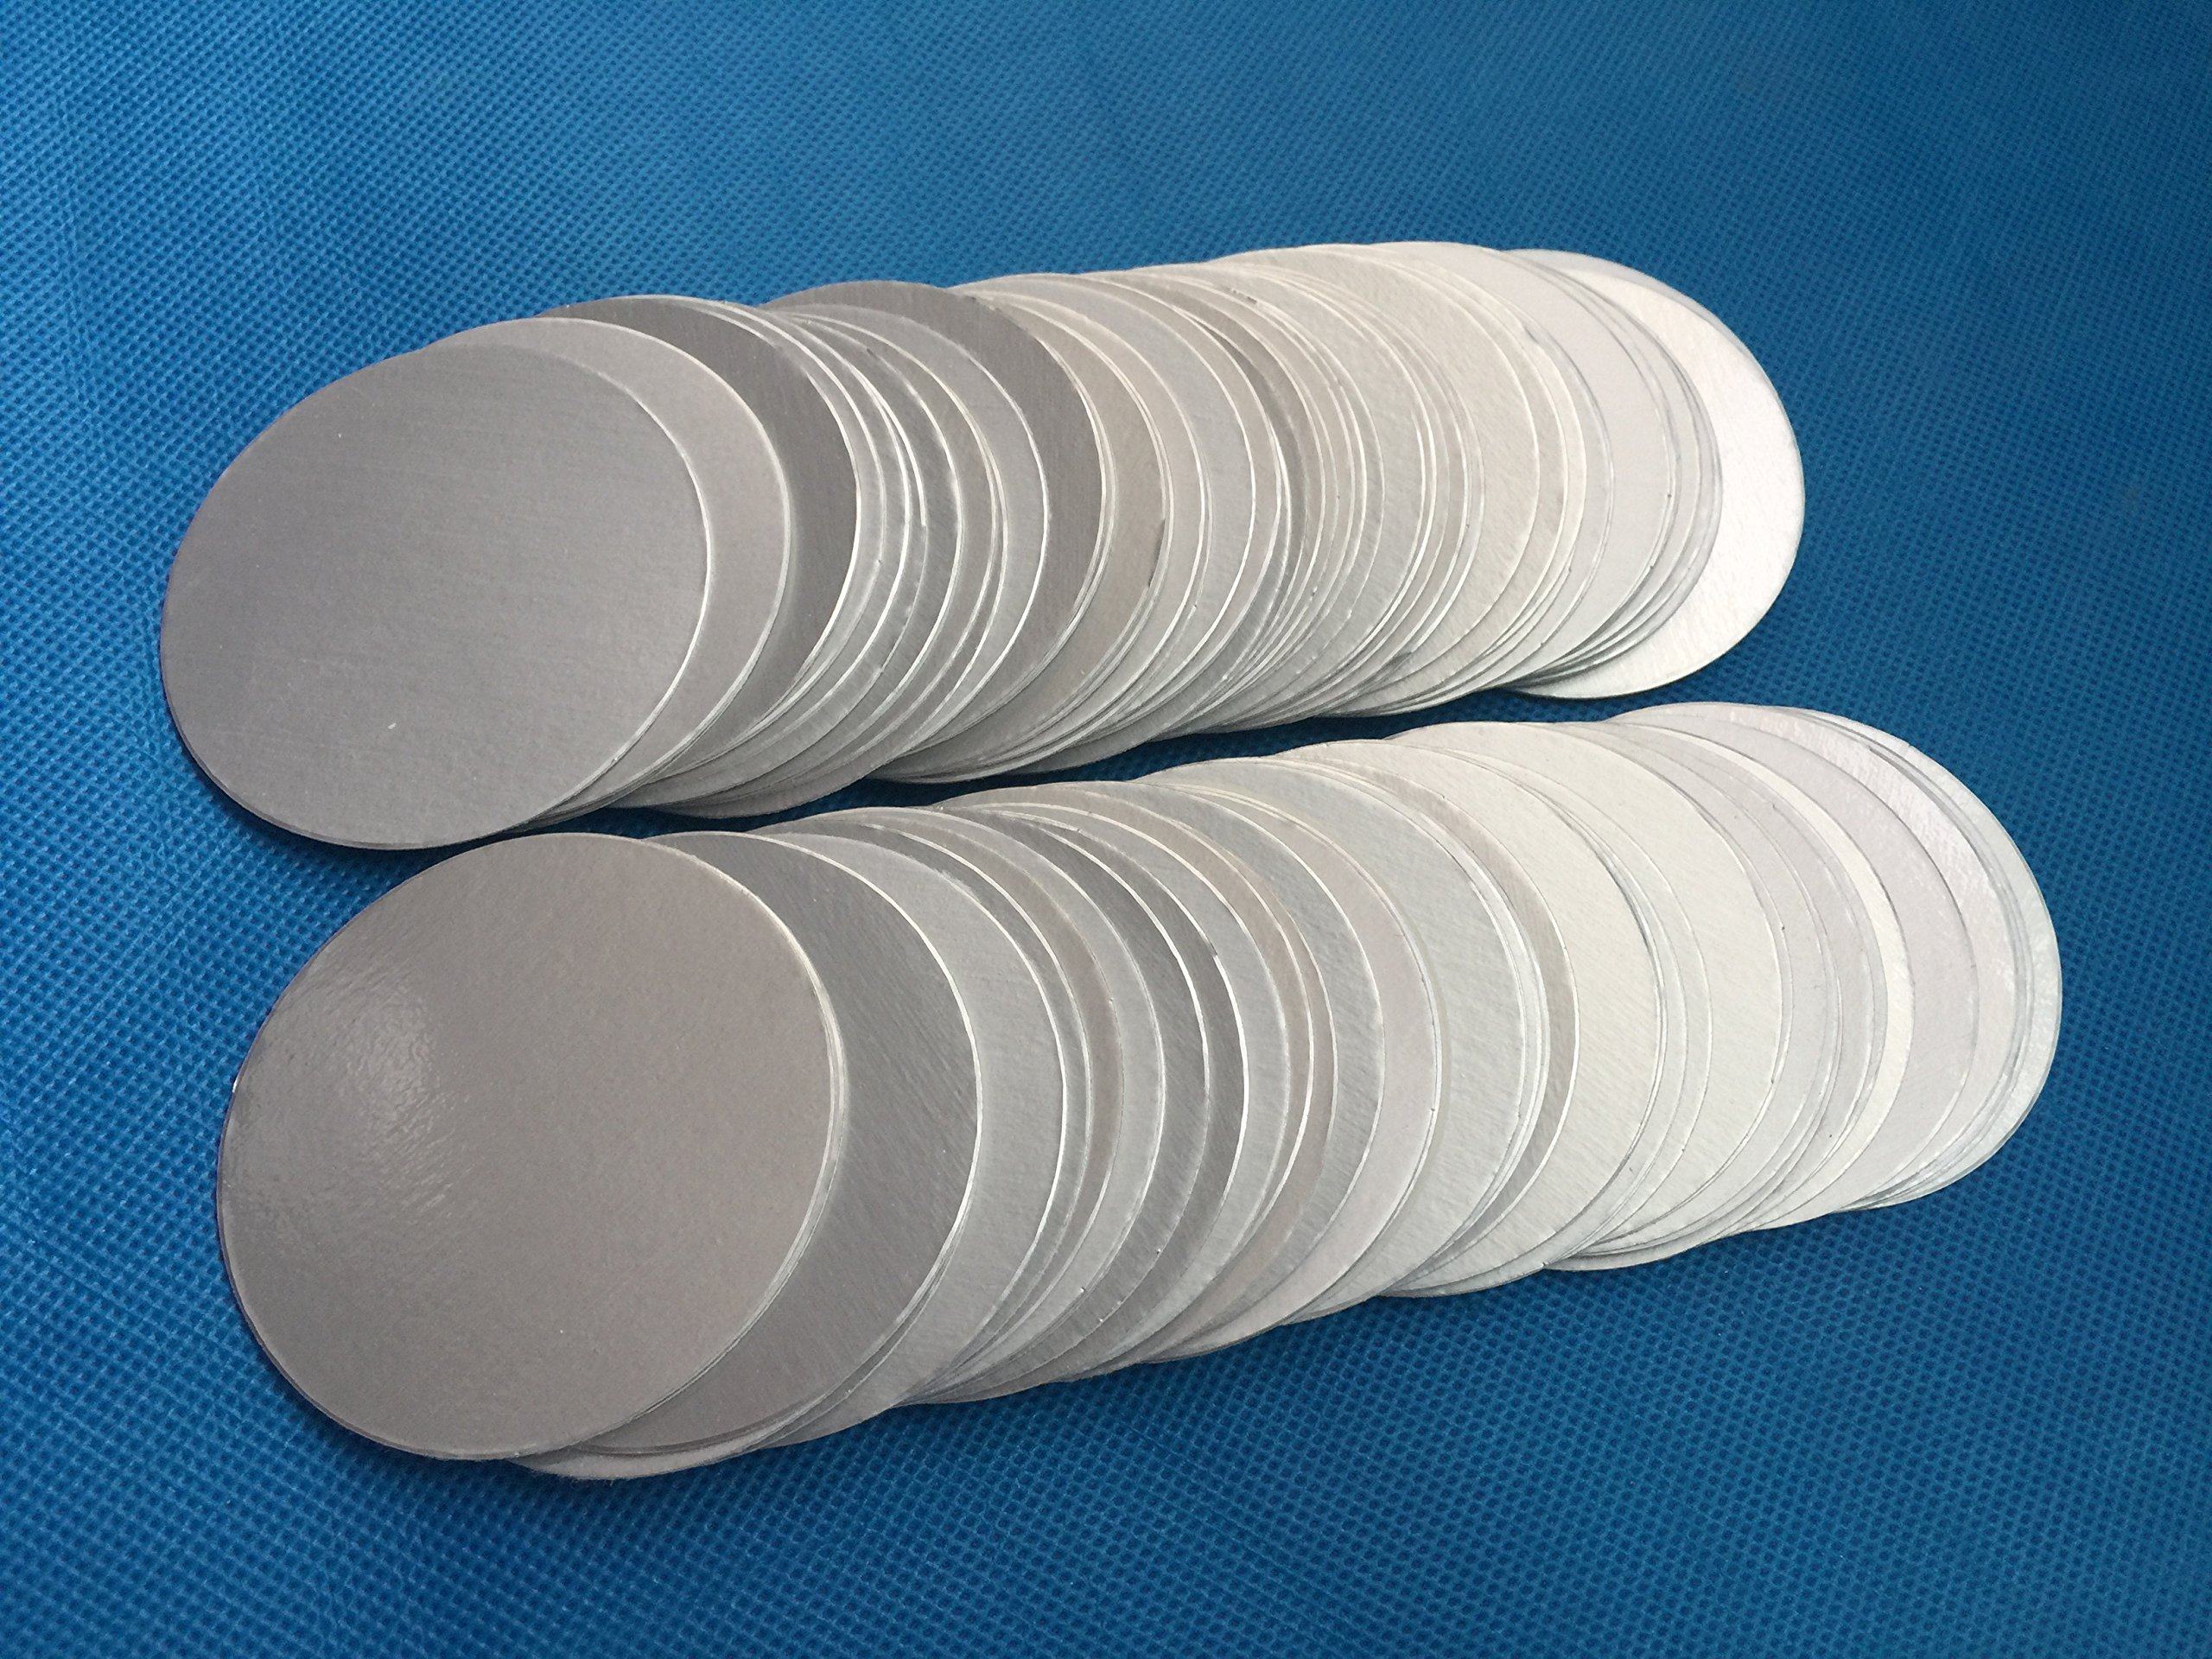 Uuni-WT HDPE bottle cap 55mm plactic laminated aluminum foil lid liners (5000PCS) by Bonny&T (Image #1)